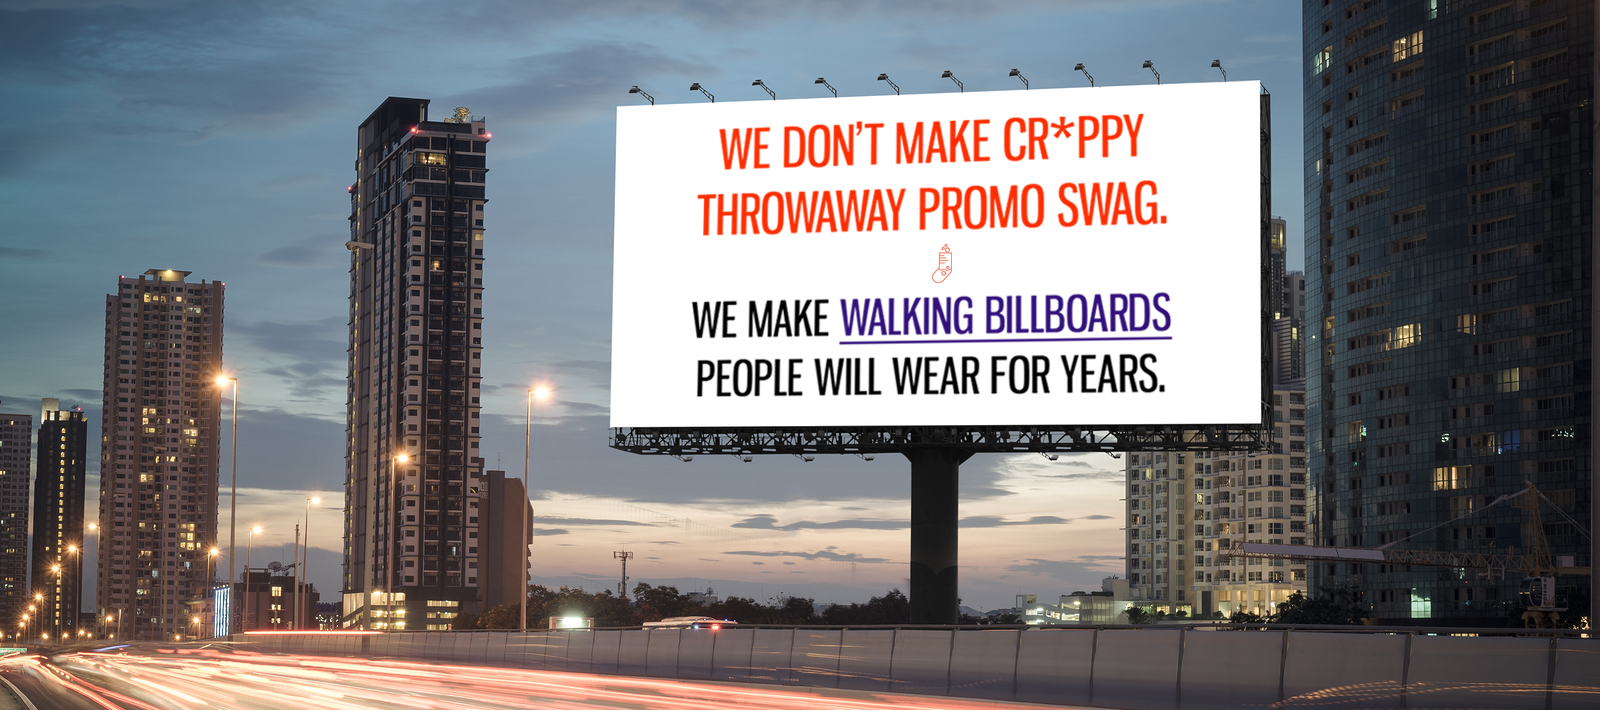 we don't make crappy throwaway swag